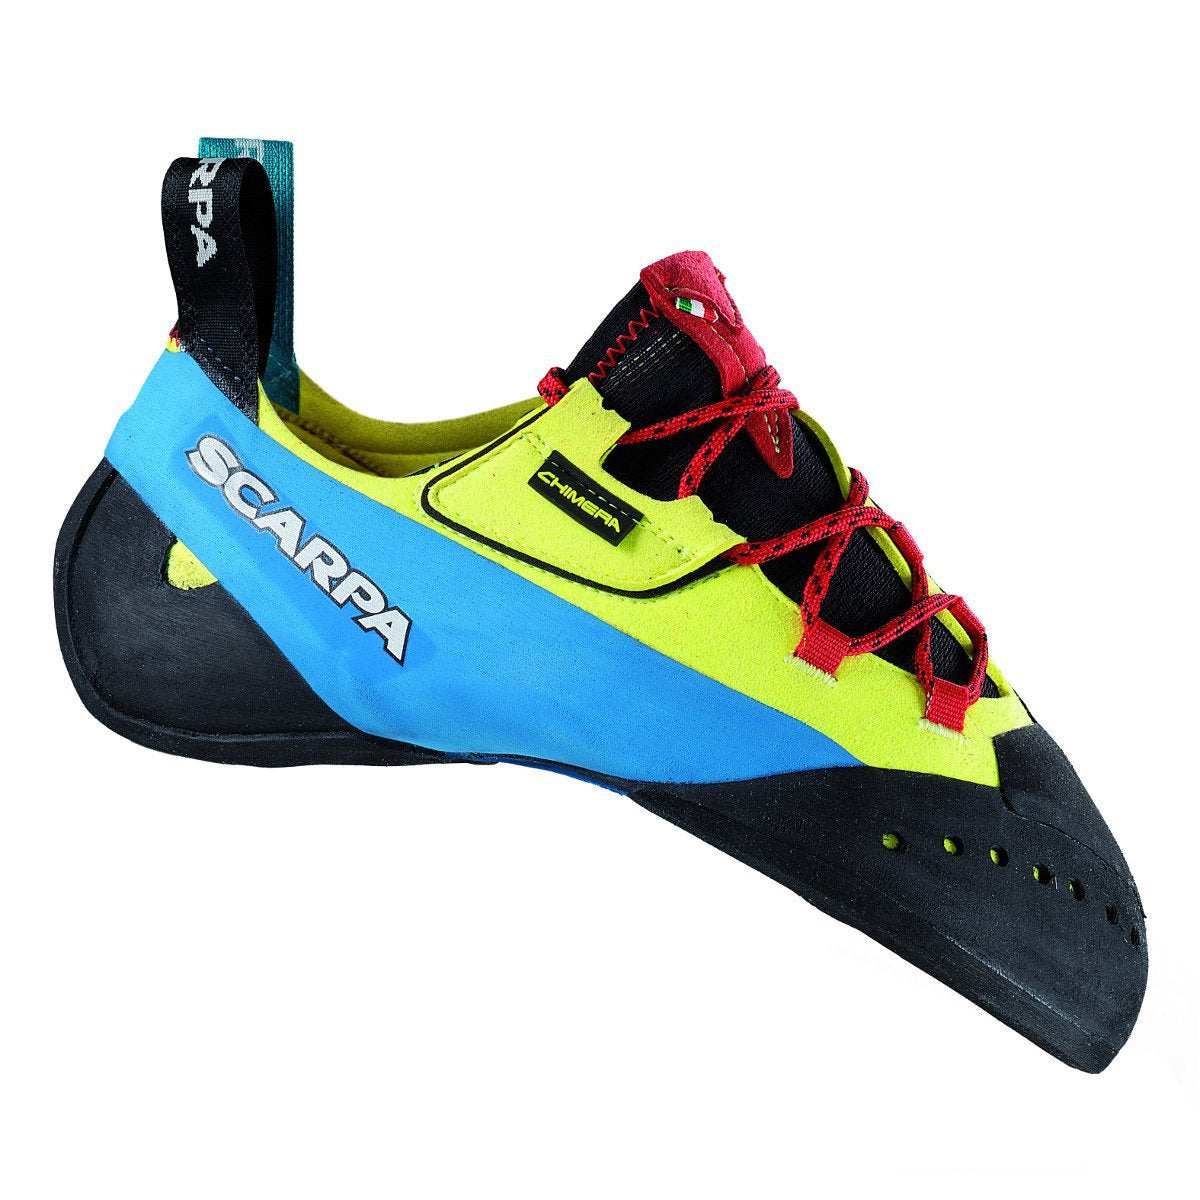 Scarpa Chimera climbing shoe, in black, blue, yellow colours and red laces